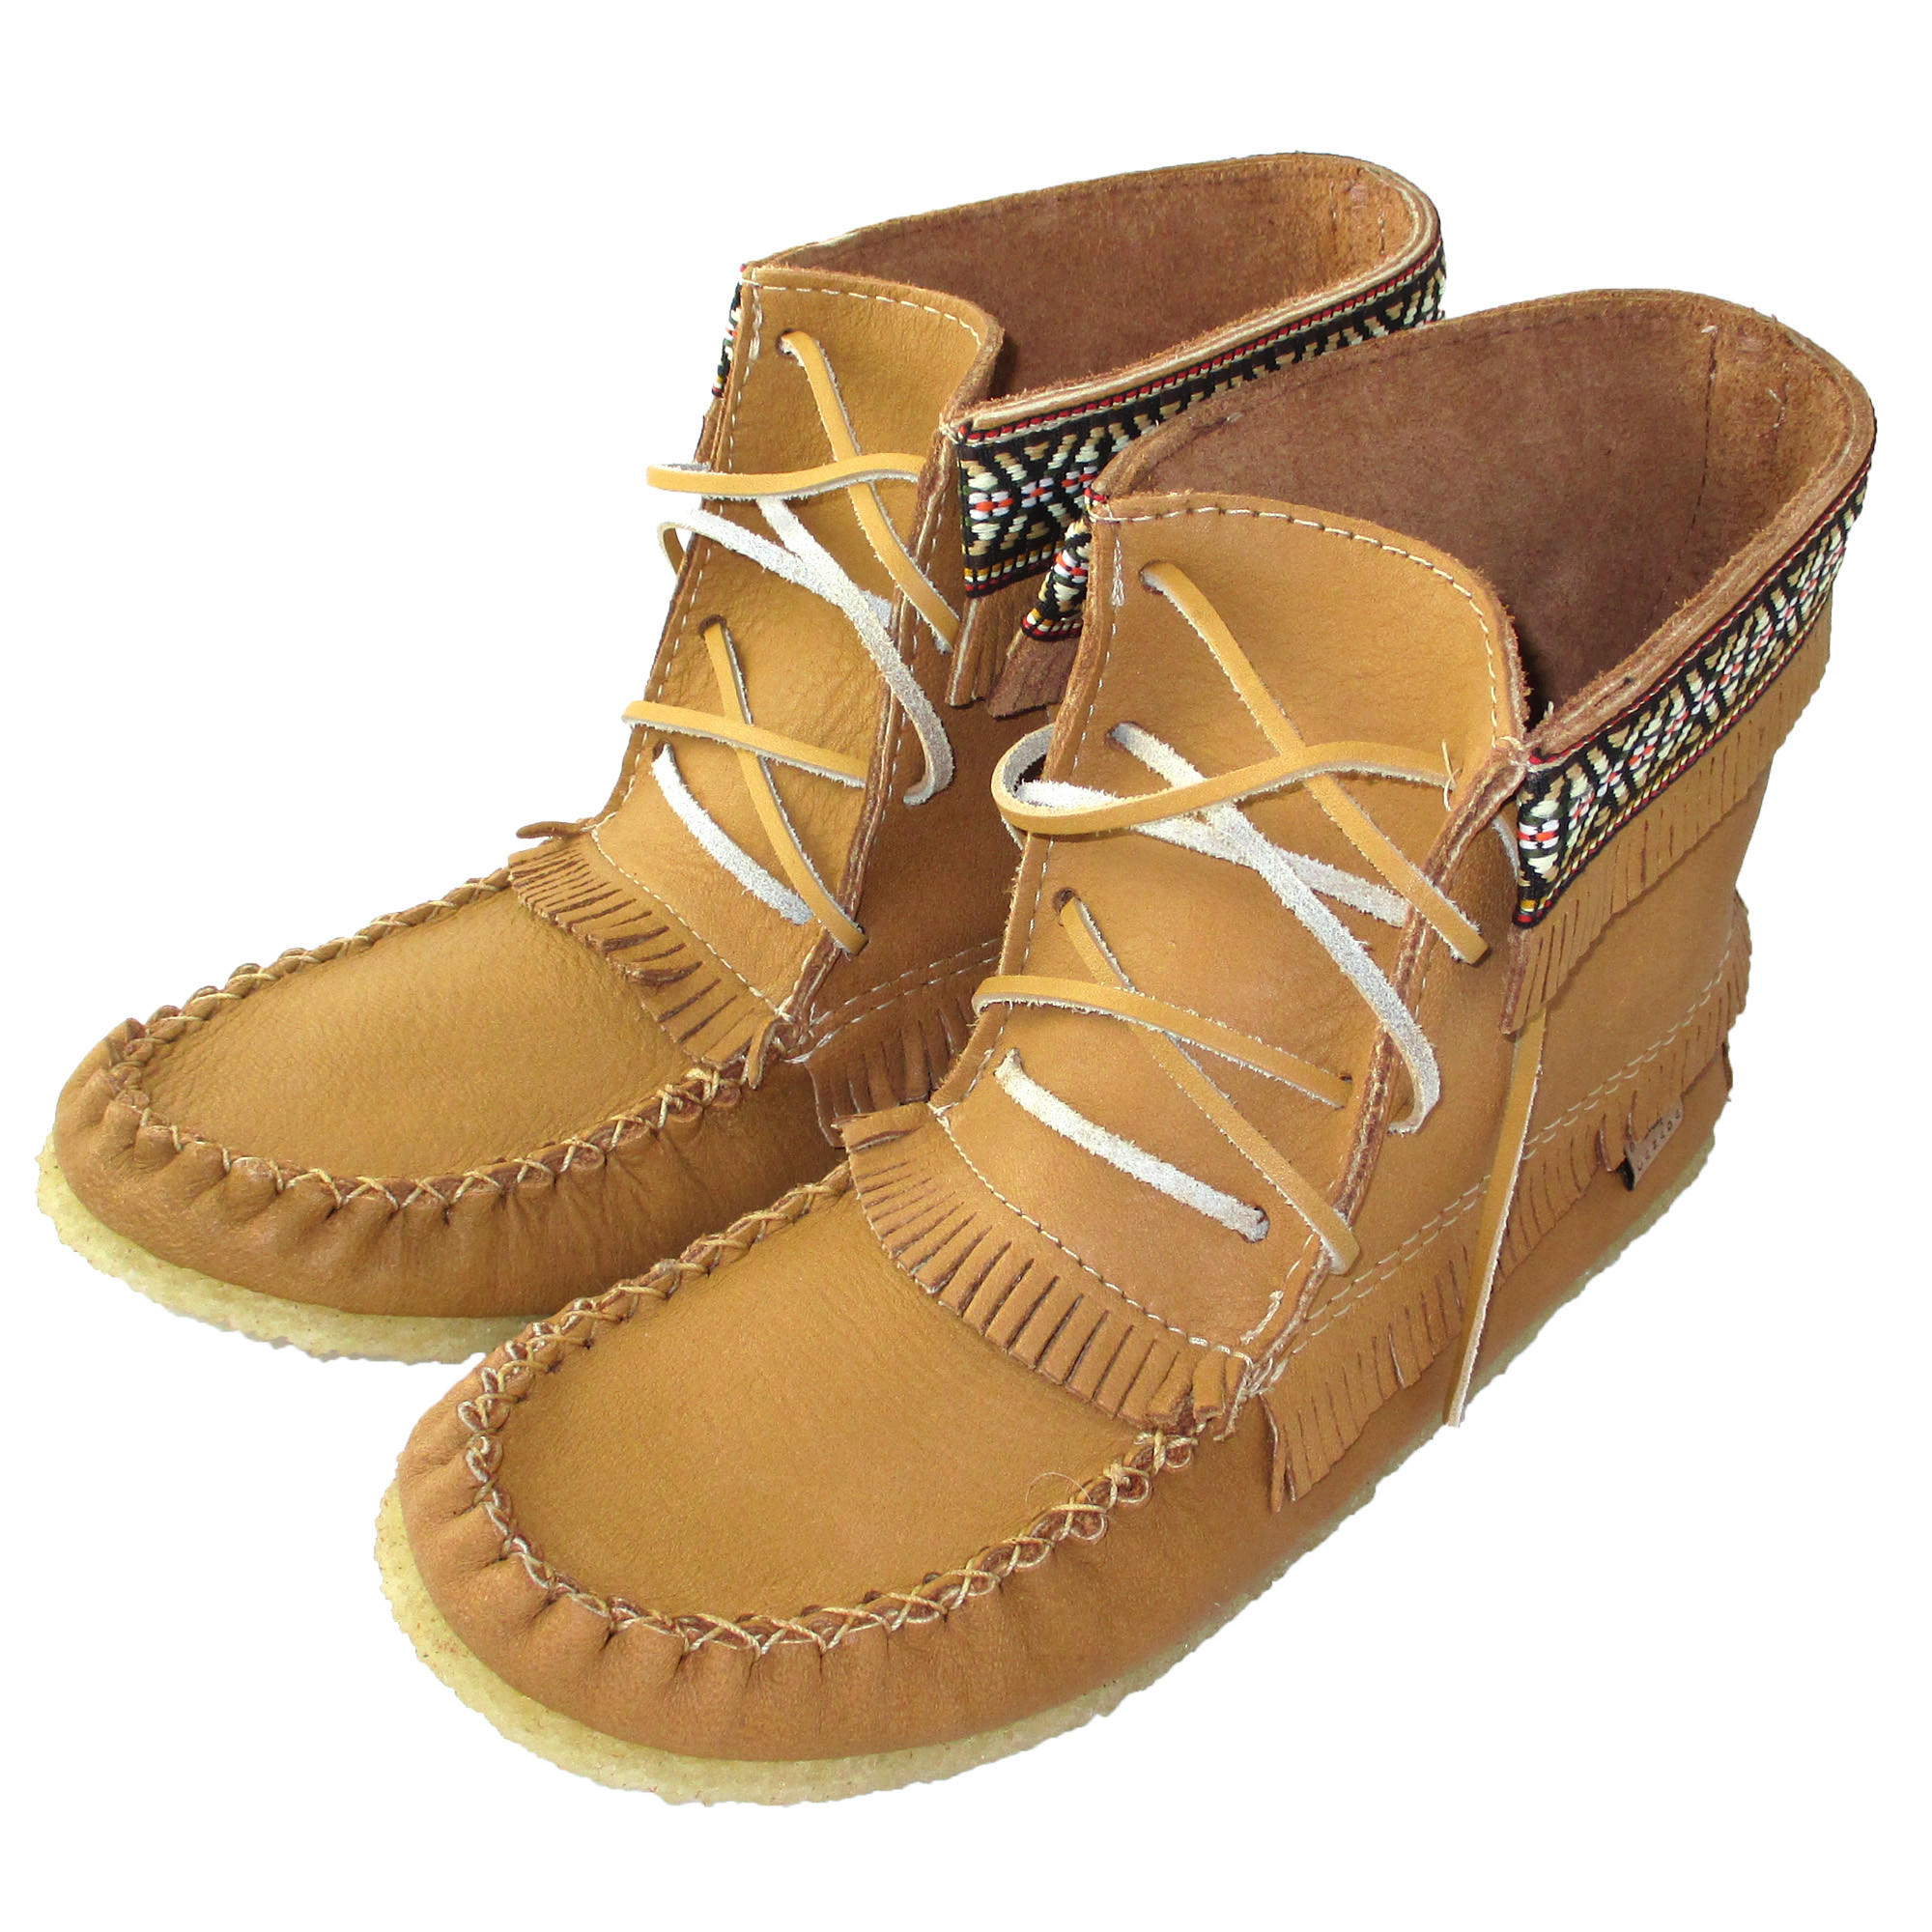 Men s moosehide leather moccasin boots from leather moccasins